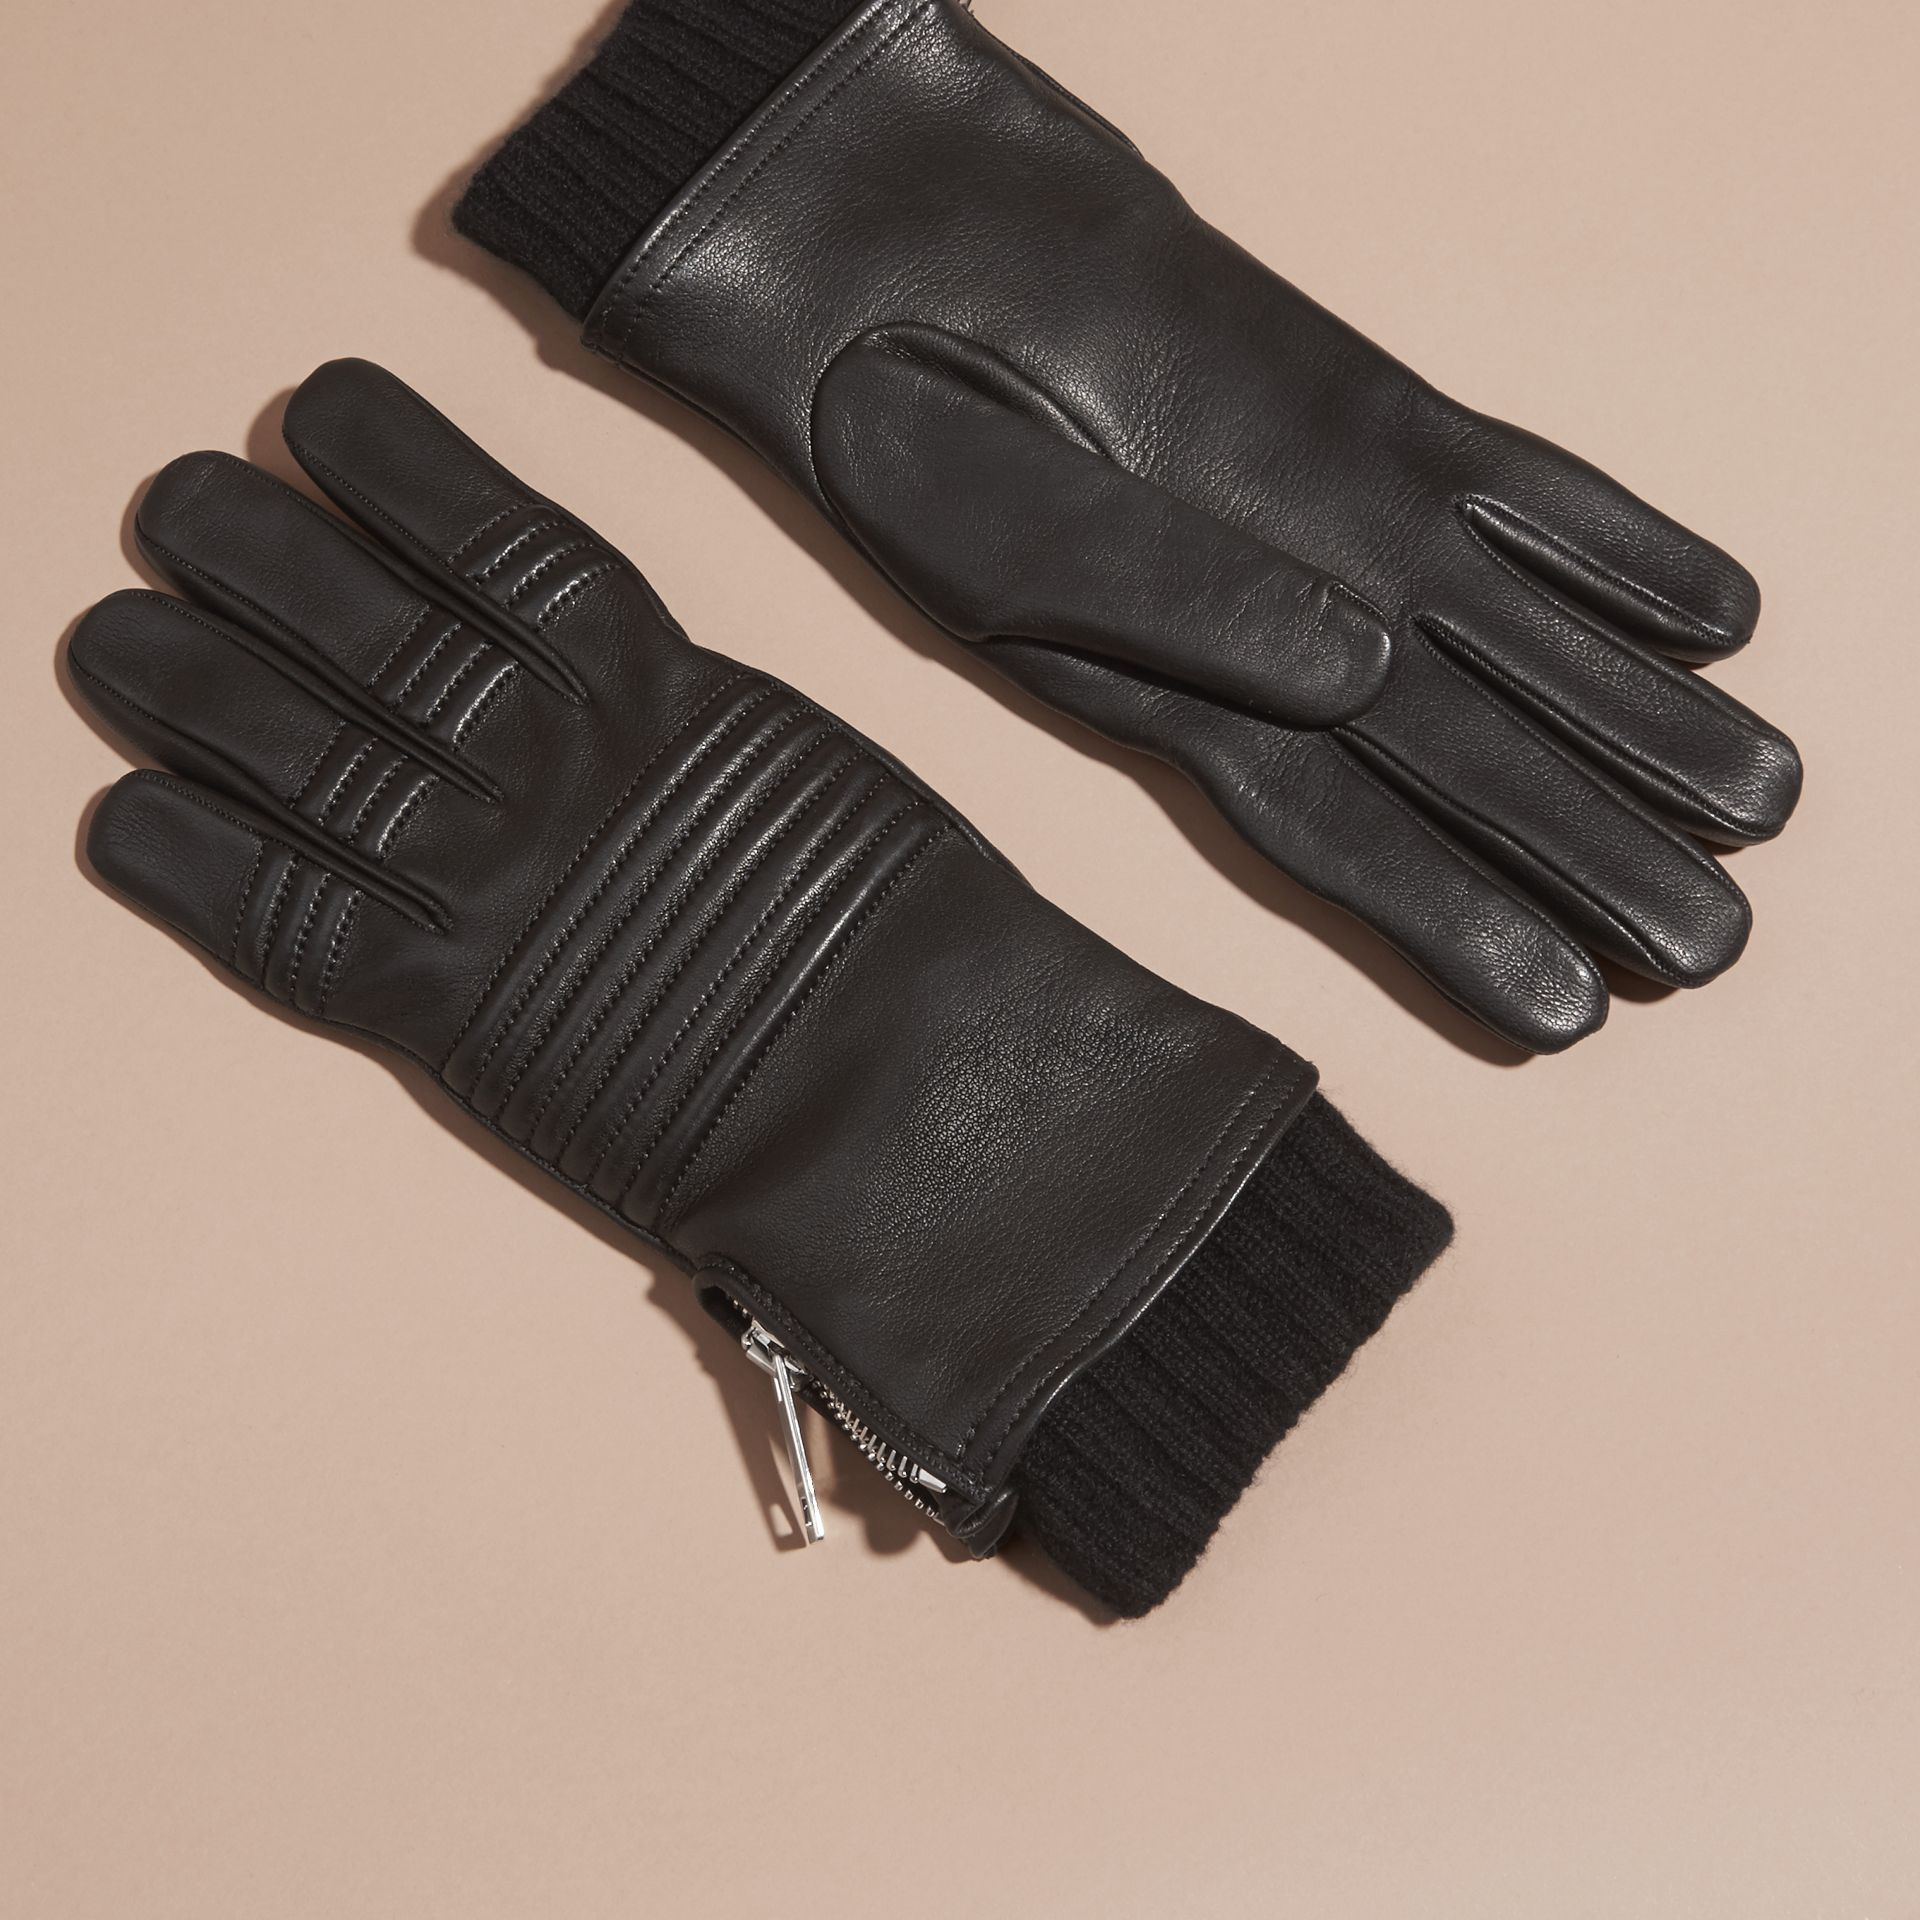 Biker Style Leather Gloves in Black - Men | Burberry - gallery image 3